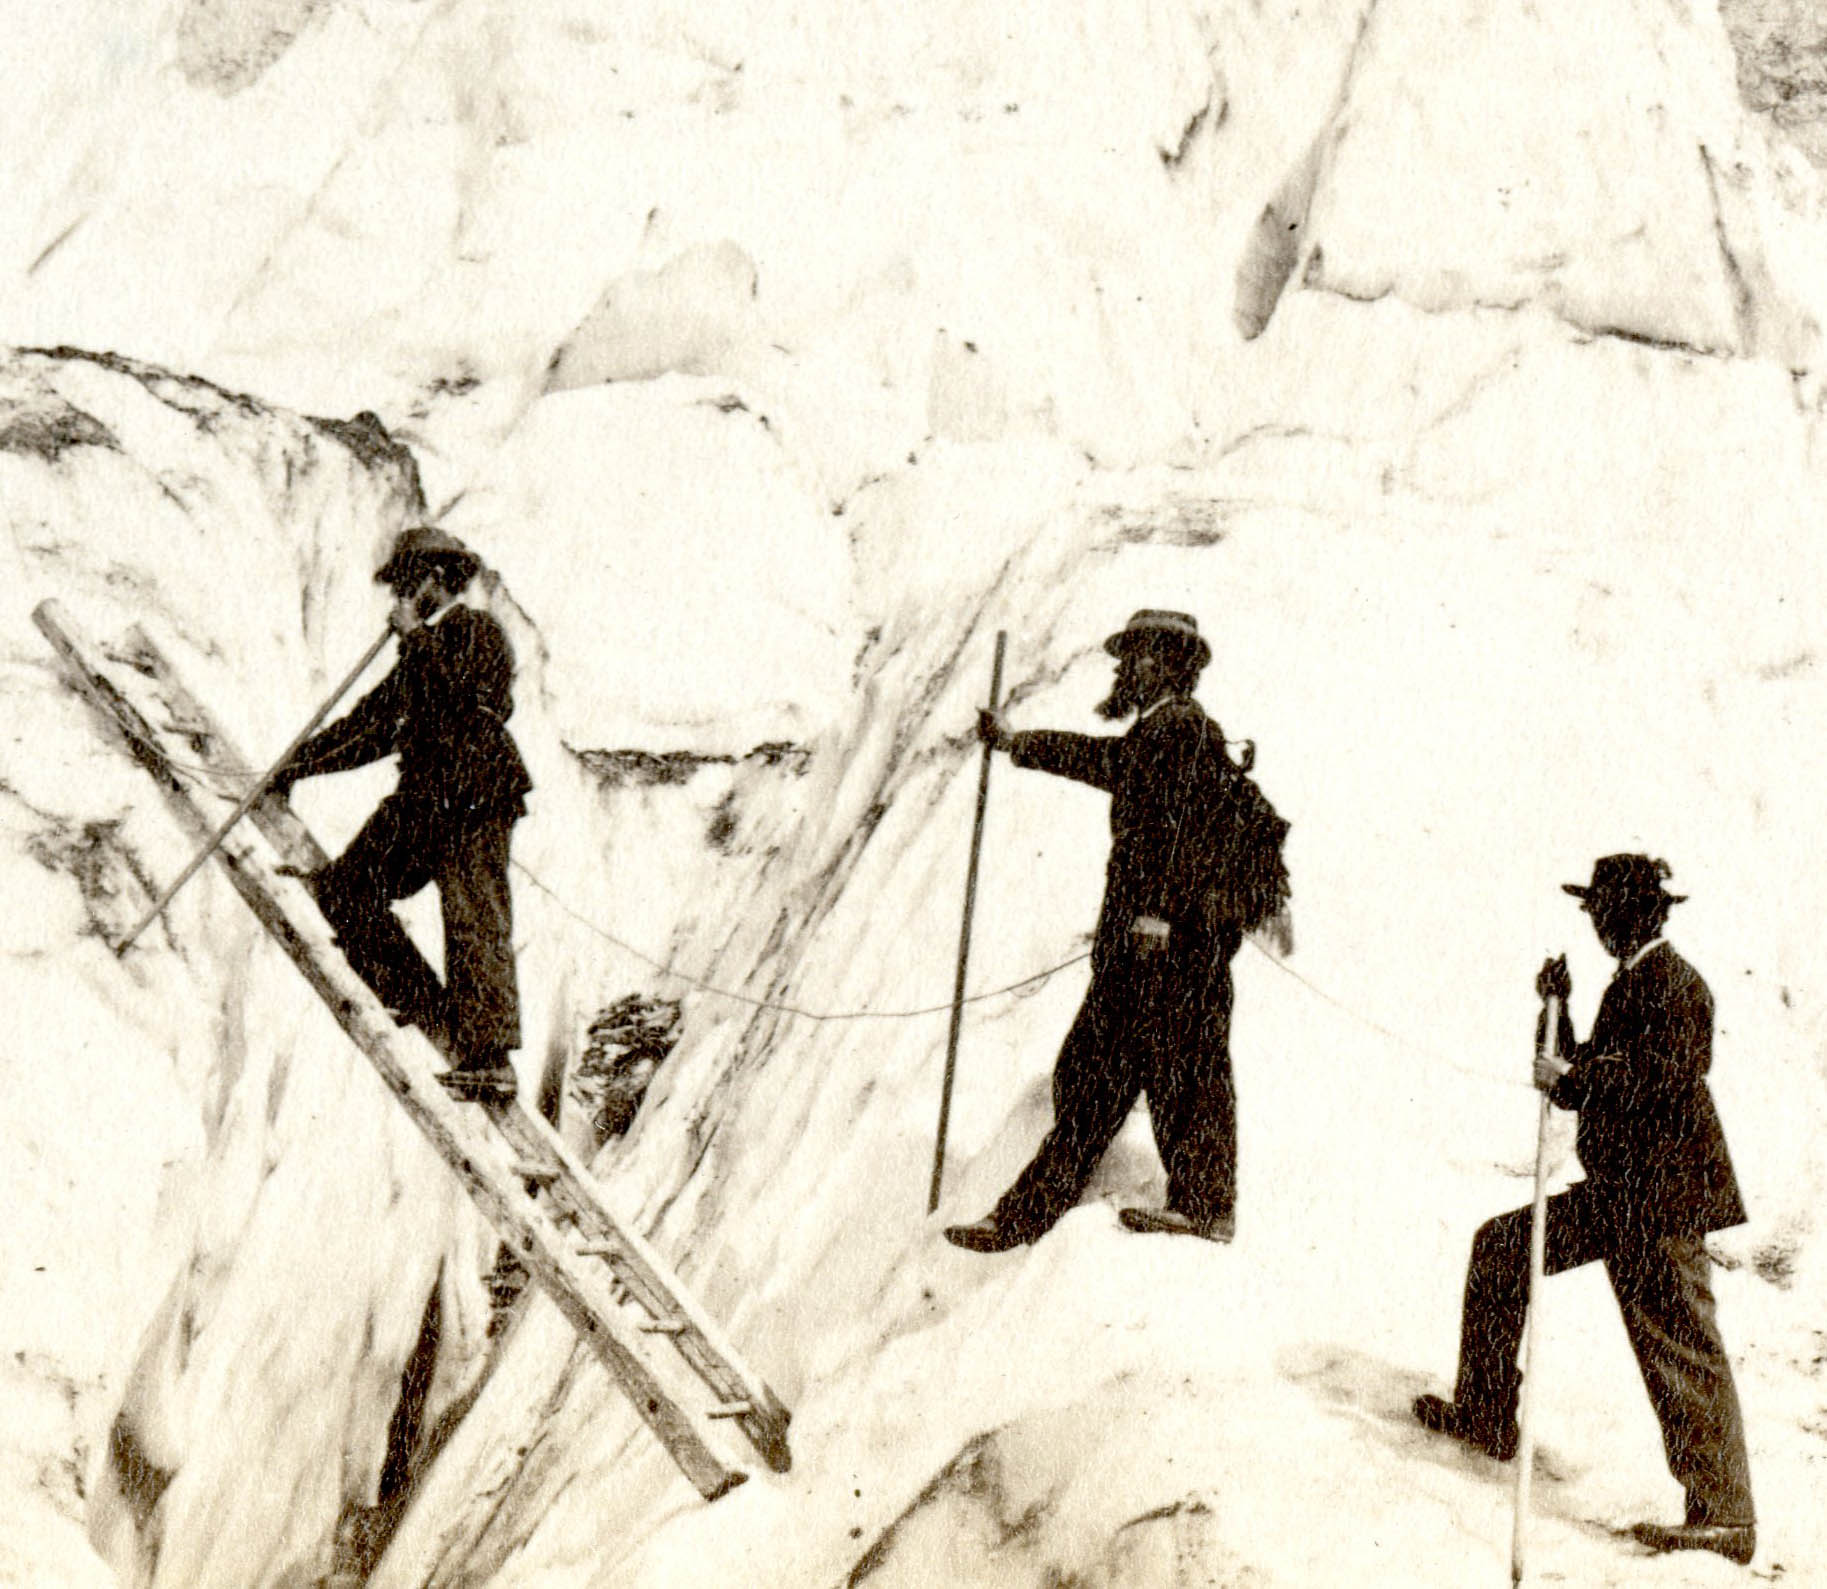 An 1870's photo of men using original alpenstocks to cross a crevasse in the Alps. These alpenstocks have no cutting tools.